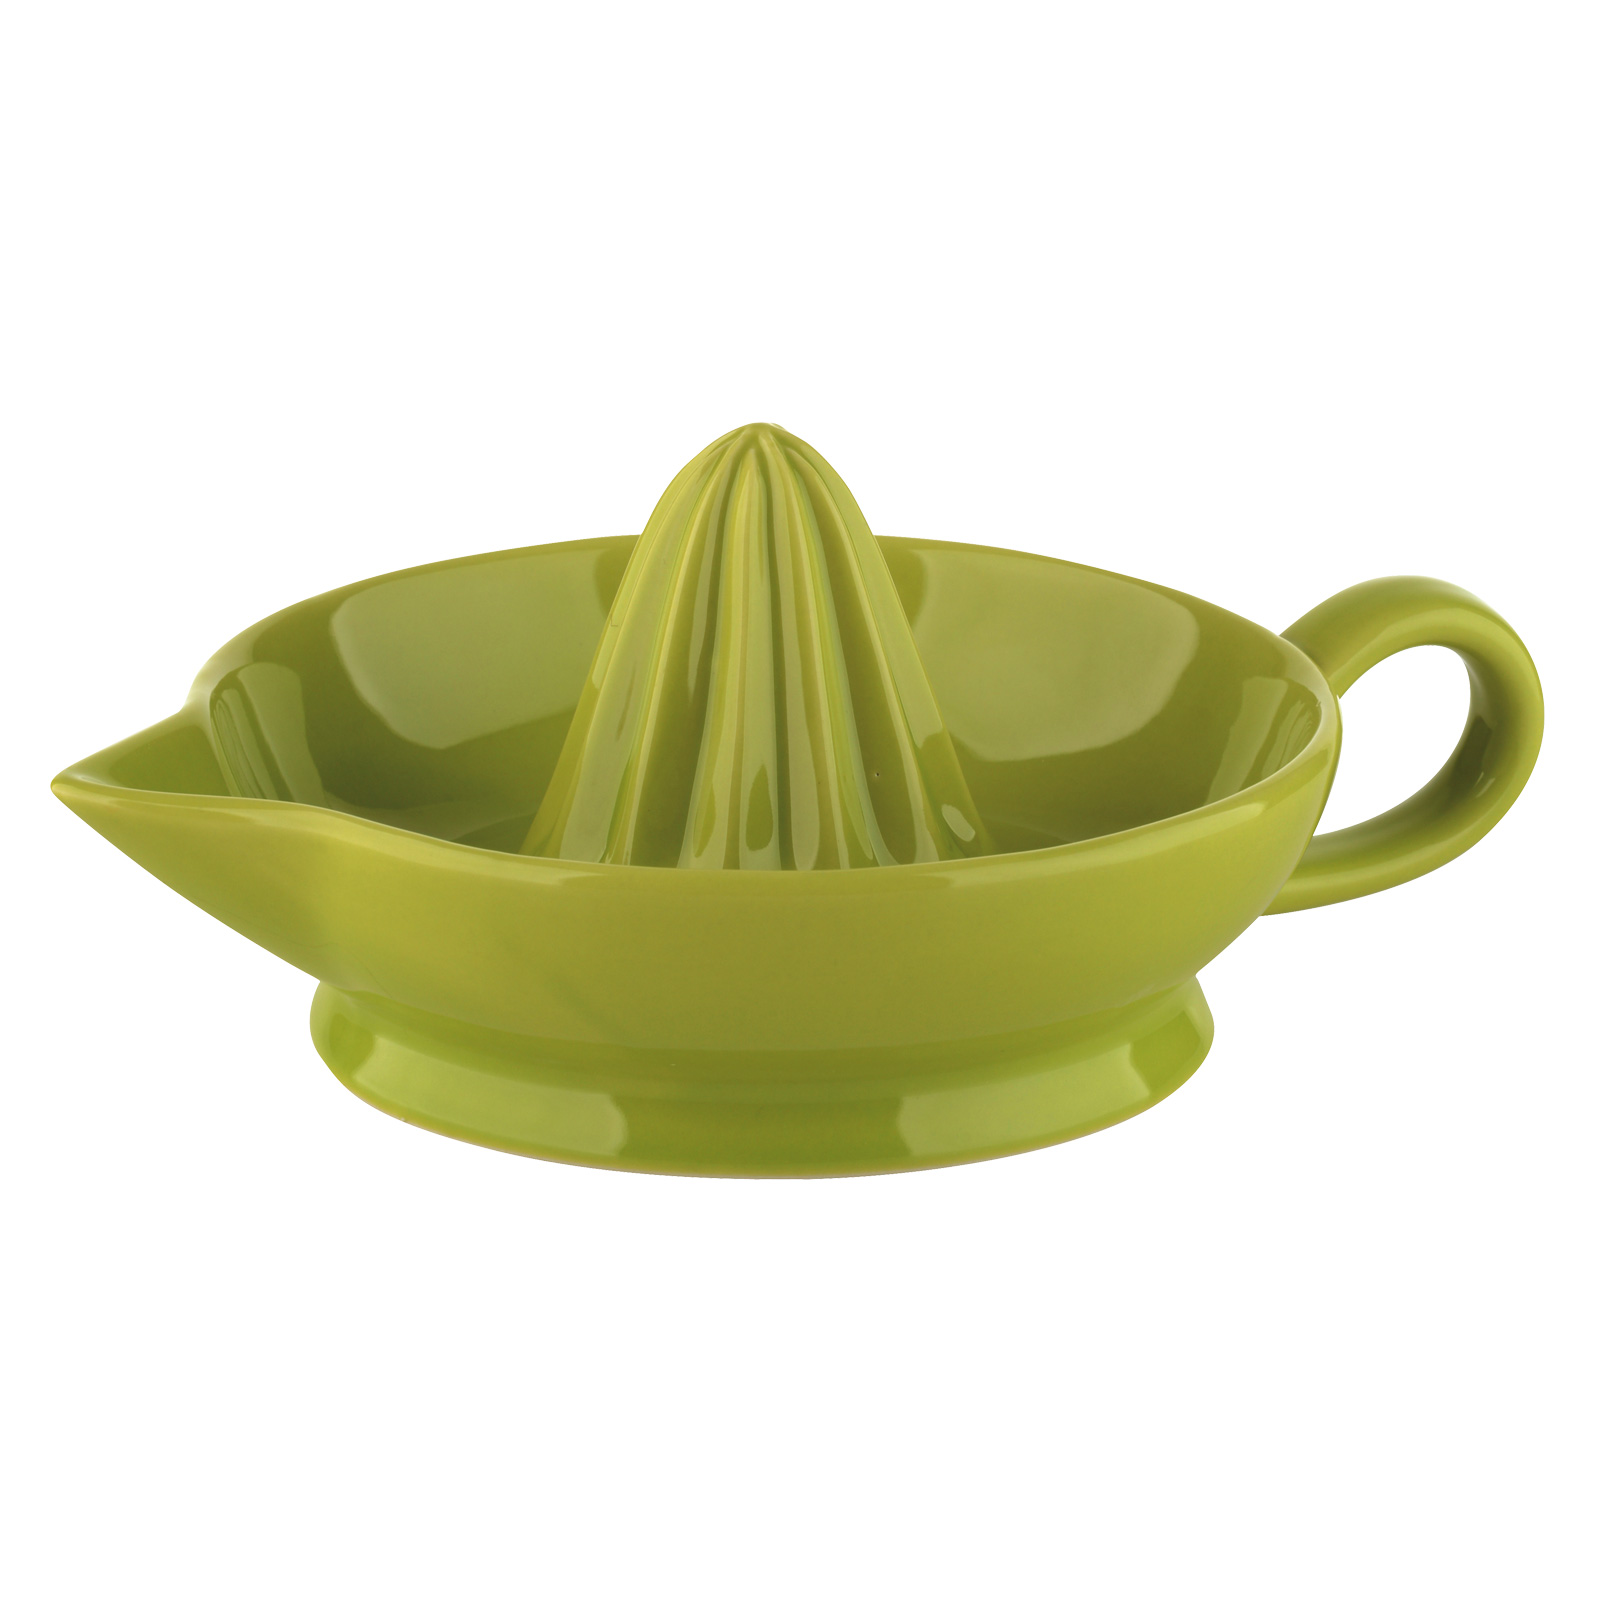 SCOOP! Juicer Lemon Grass by BIA